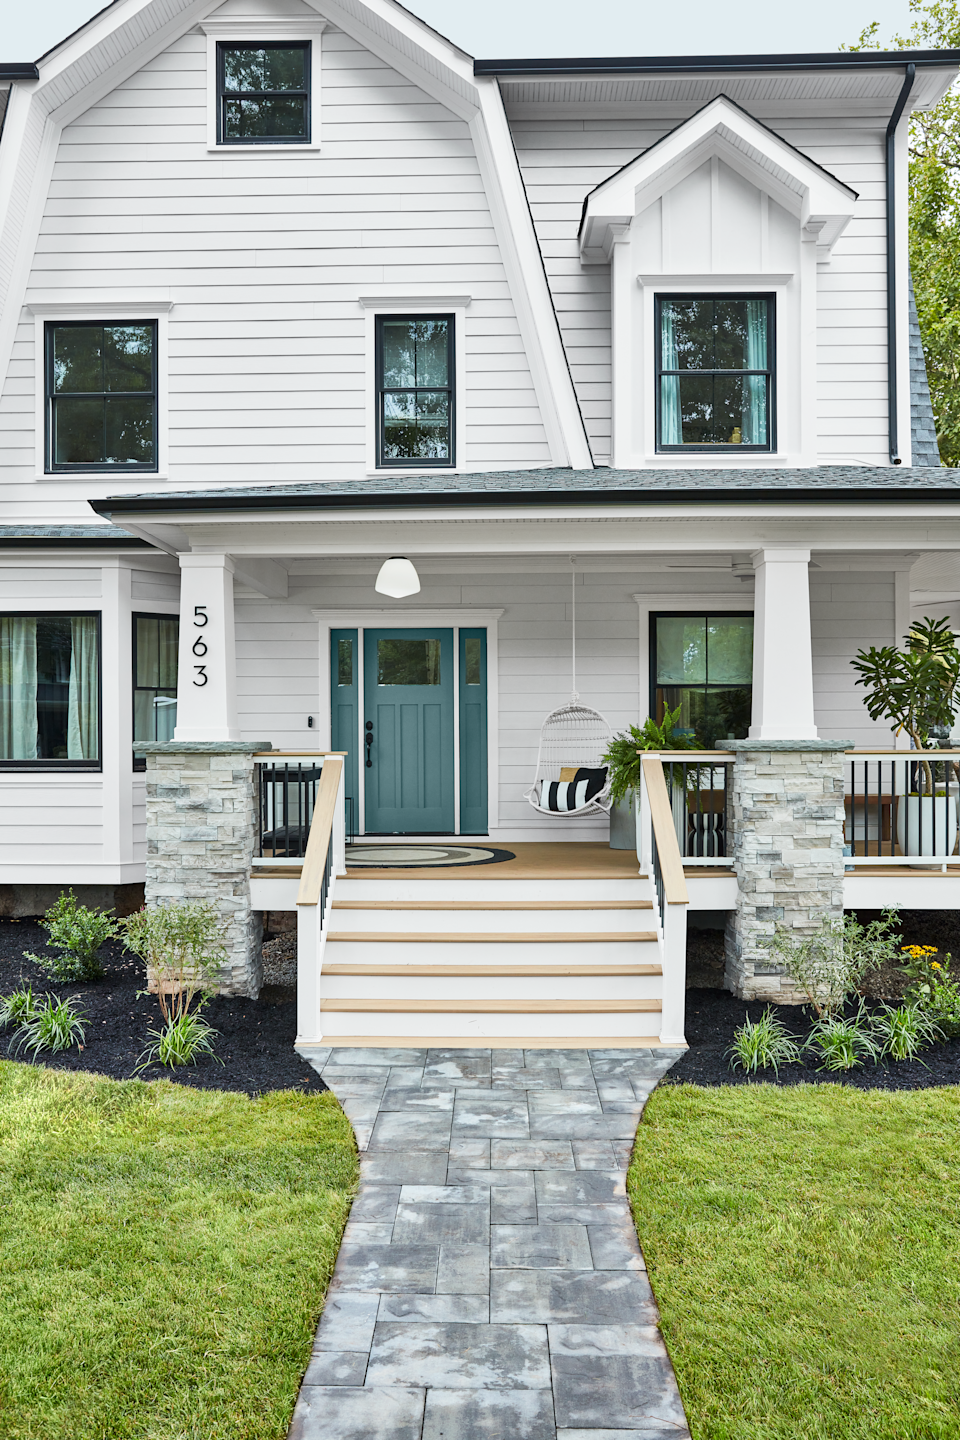 Real Simple Home 2021, Curb Appeal Ideas